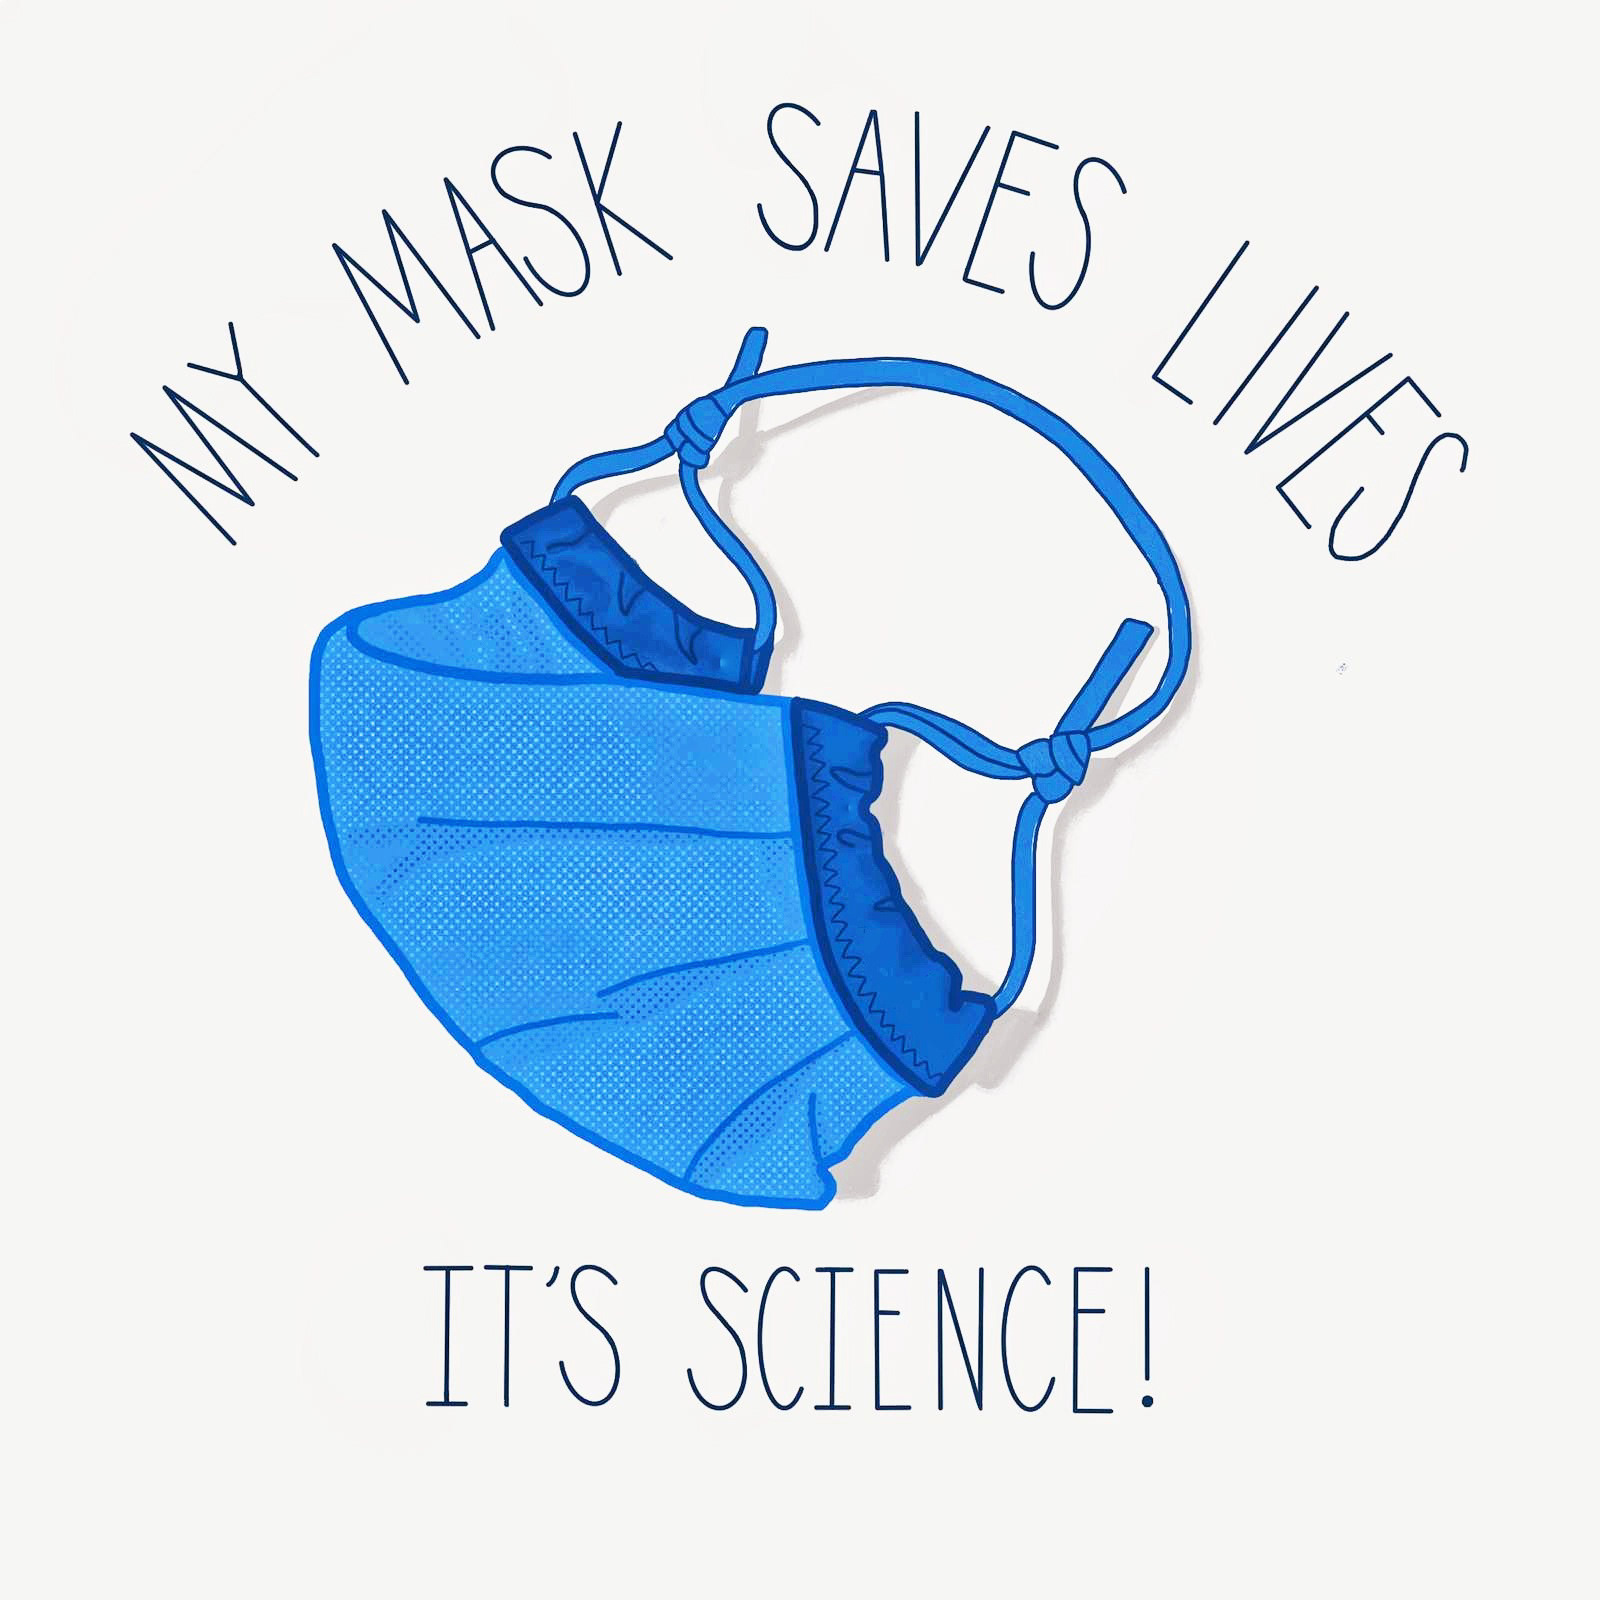 My MASK SAVES LIVES LOGO